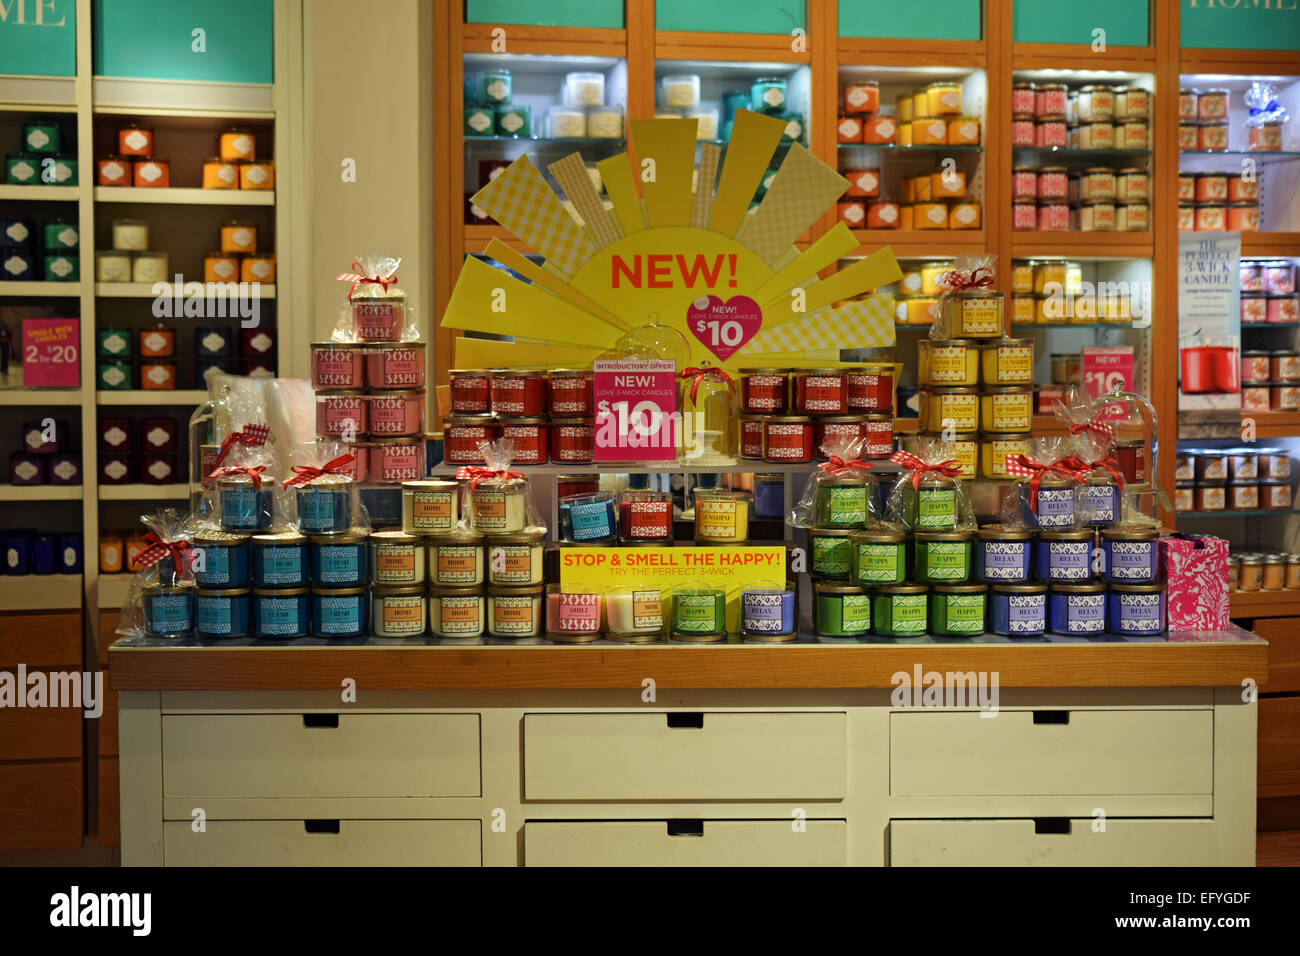 scented candles for sale at a bath body works store in the stock photo 78666939 alamy. Black Bedroom Furniture Sets. Home Design Ideas